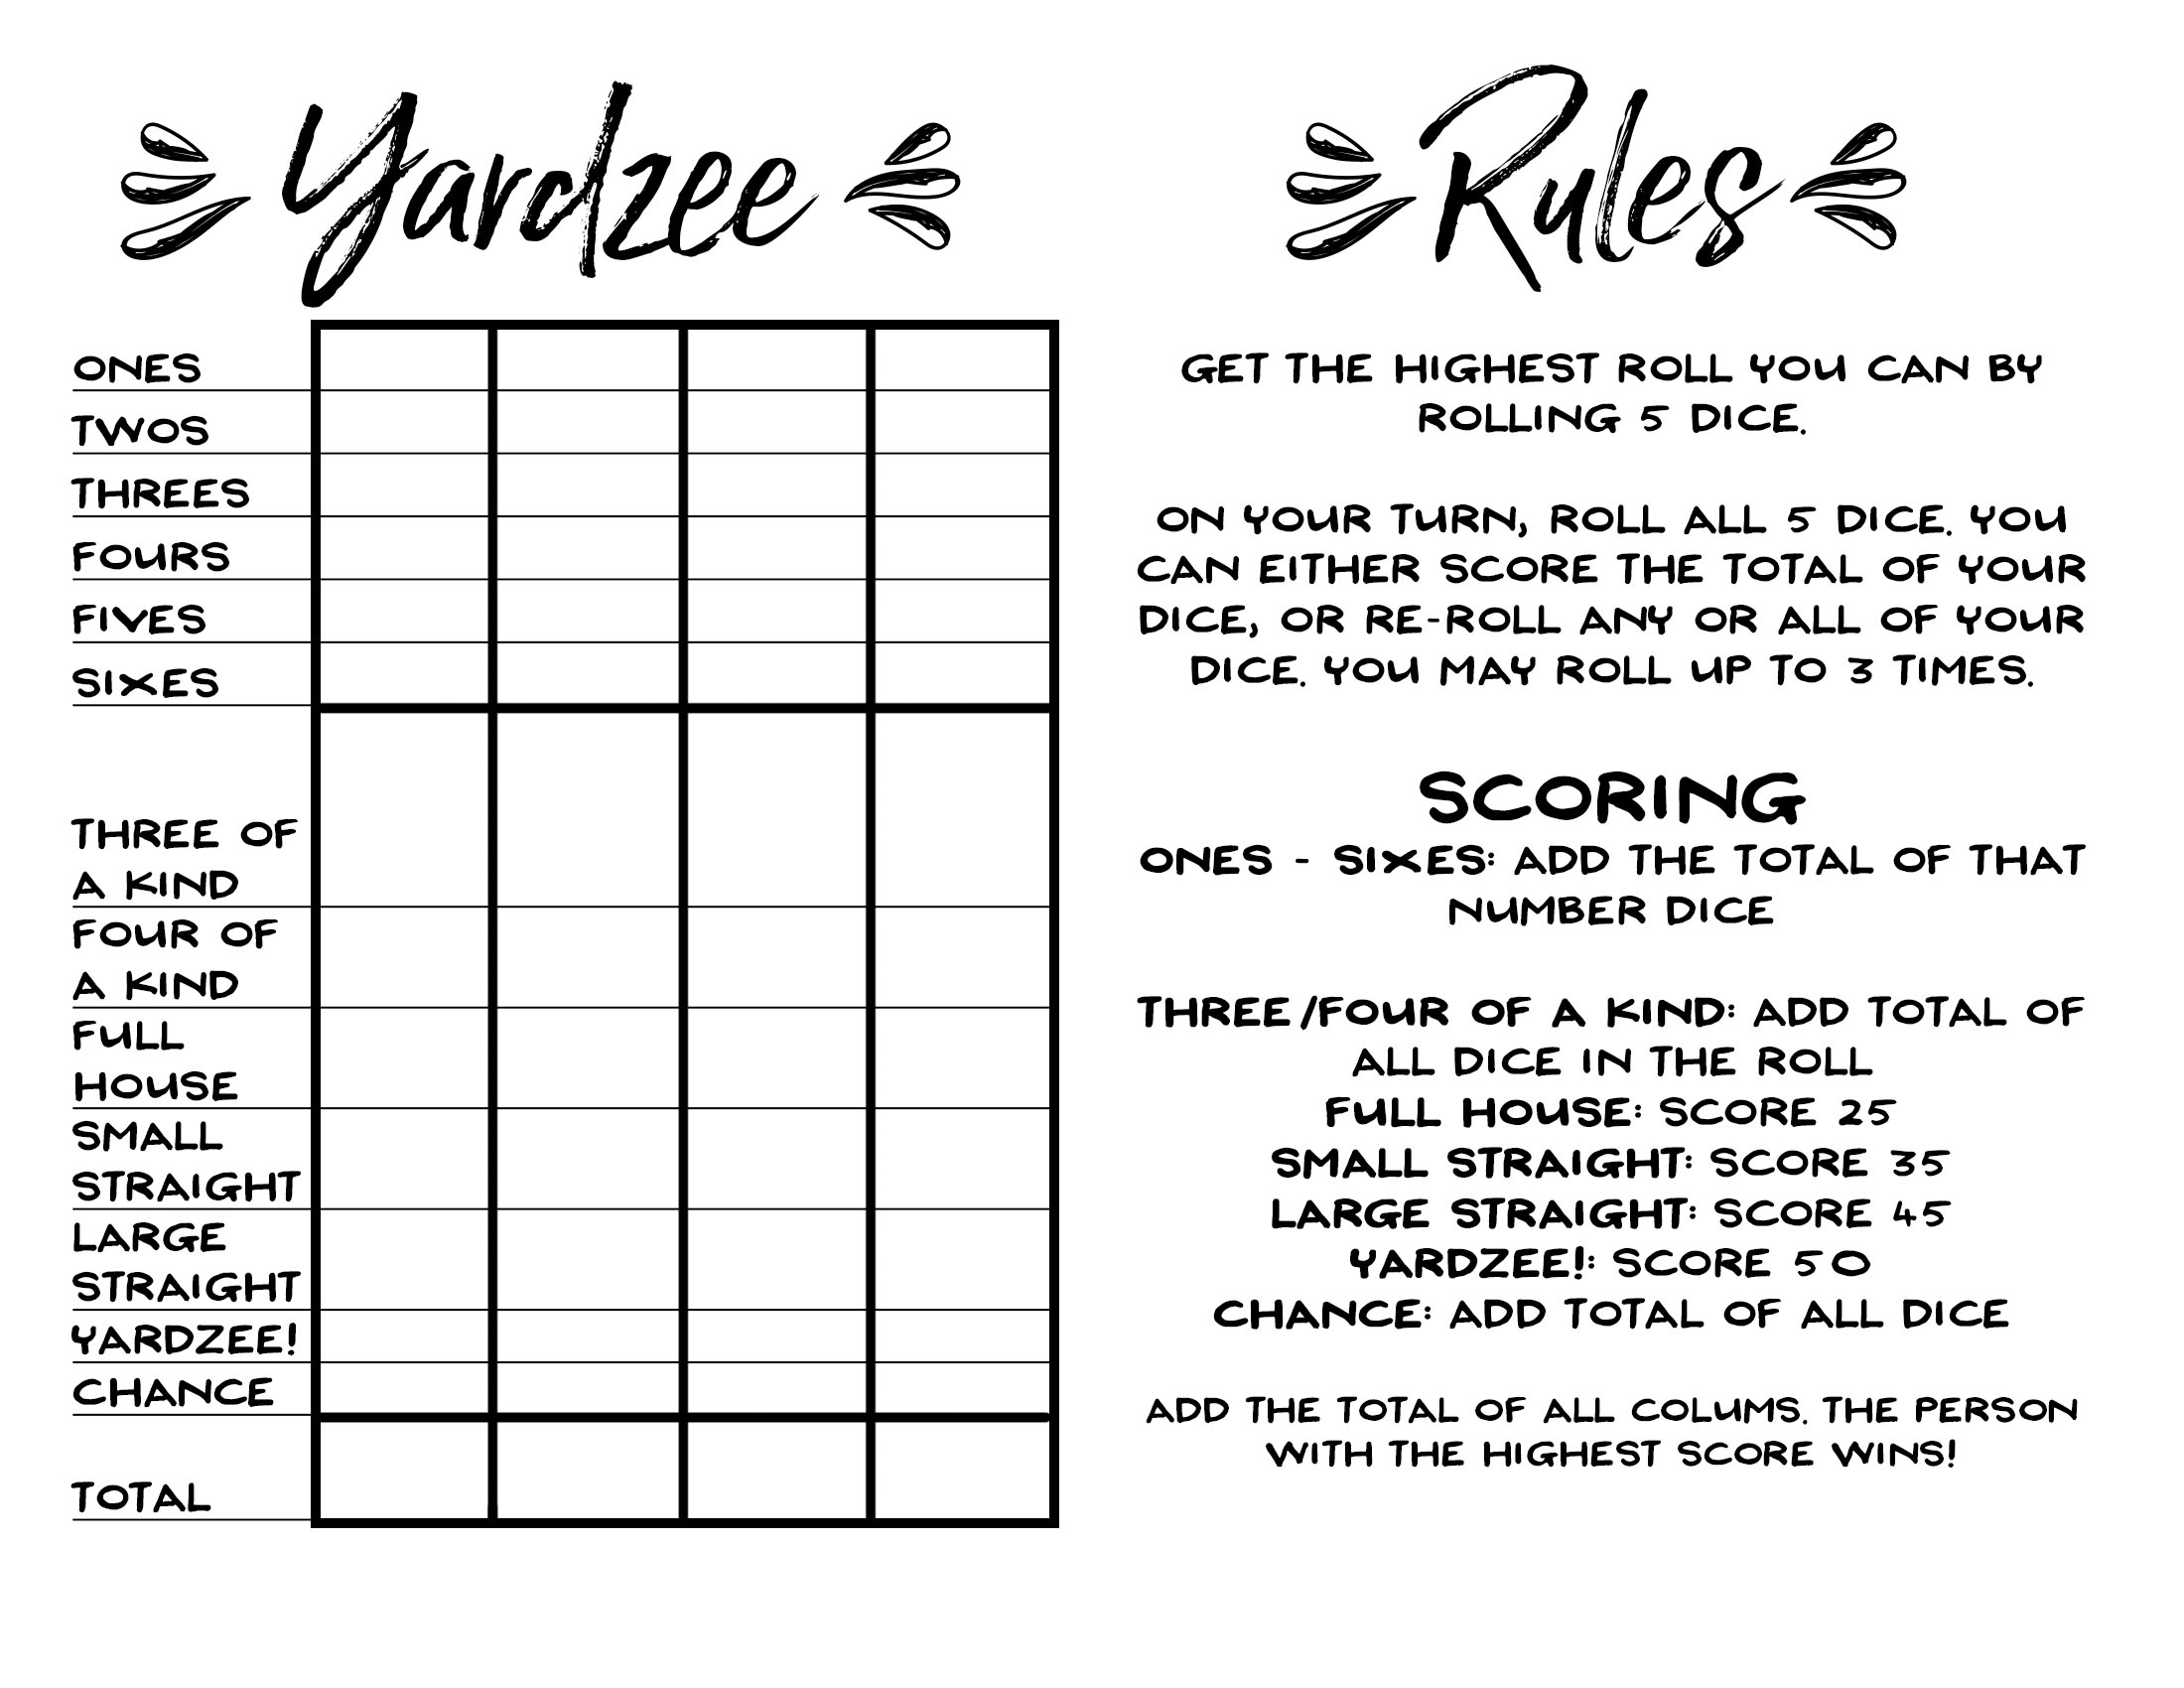 photograph relating to Free Printable Yardzee Score Card titled Hefty Yahtzee Rating Card Pdf